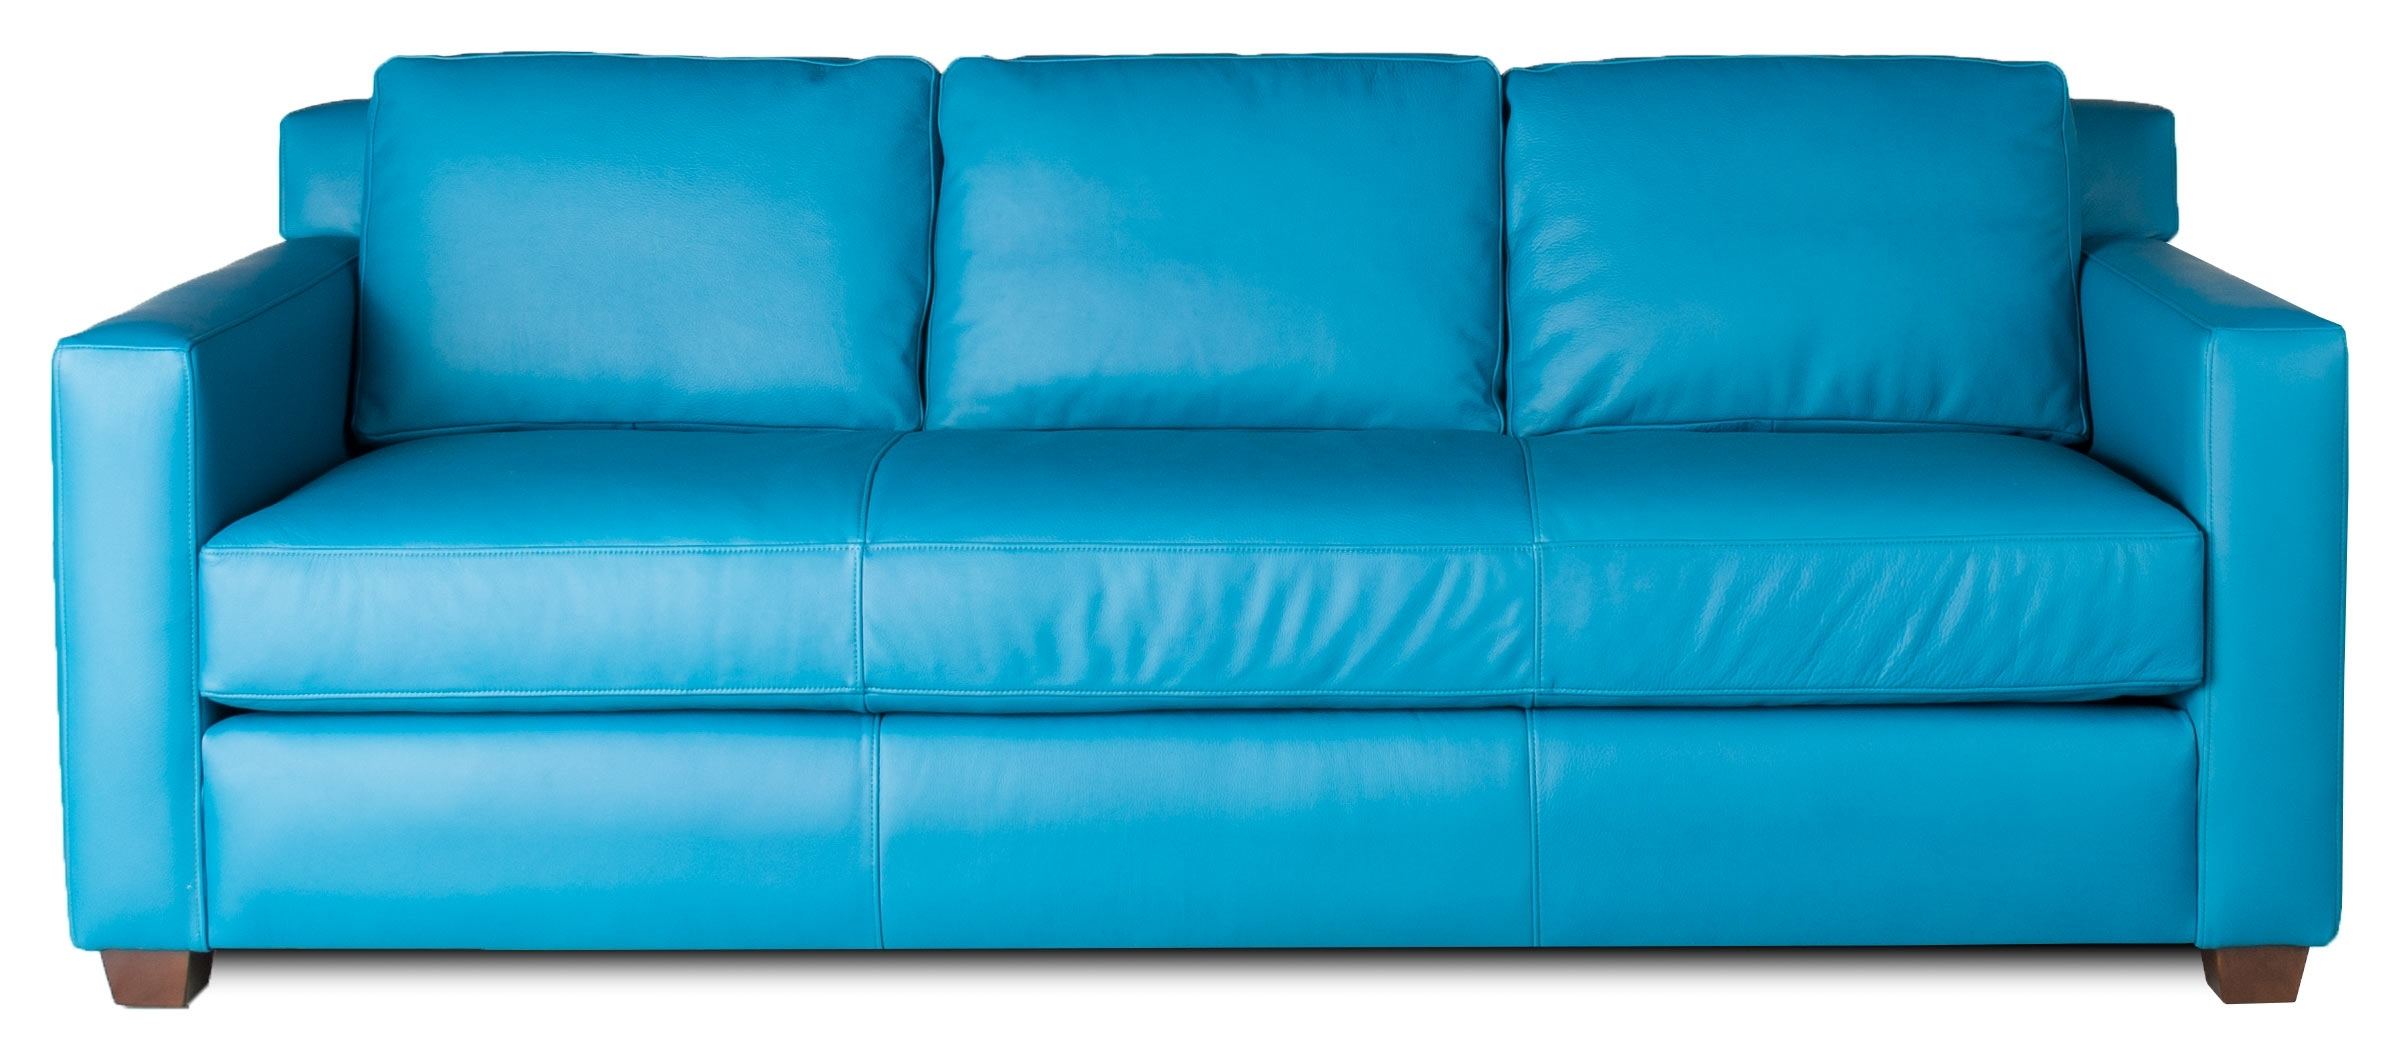 Catosfera Pertaining To Best And Newest Aqua Sofas (View 6 of 15)